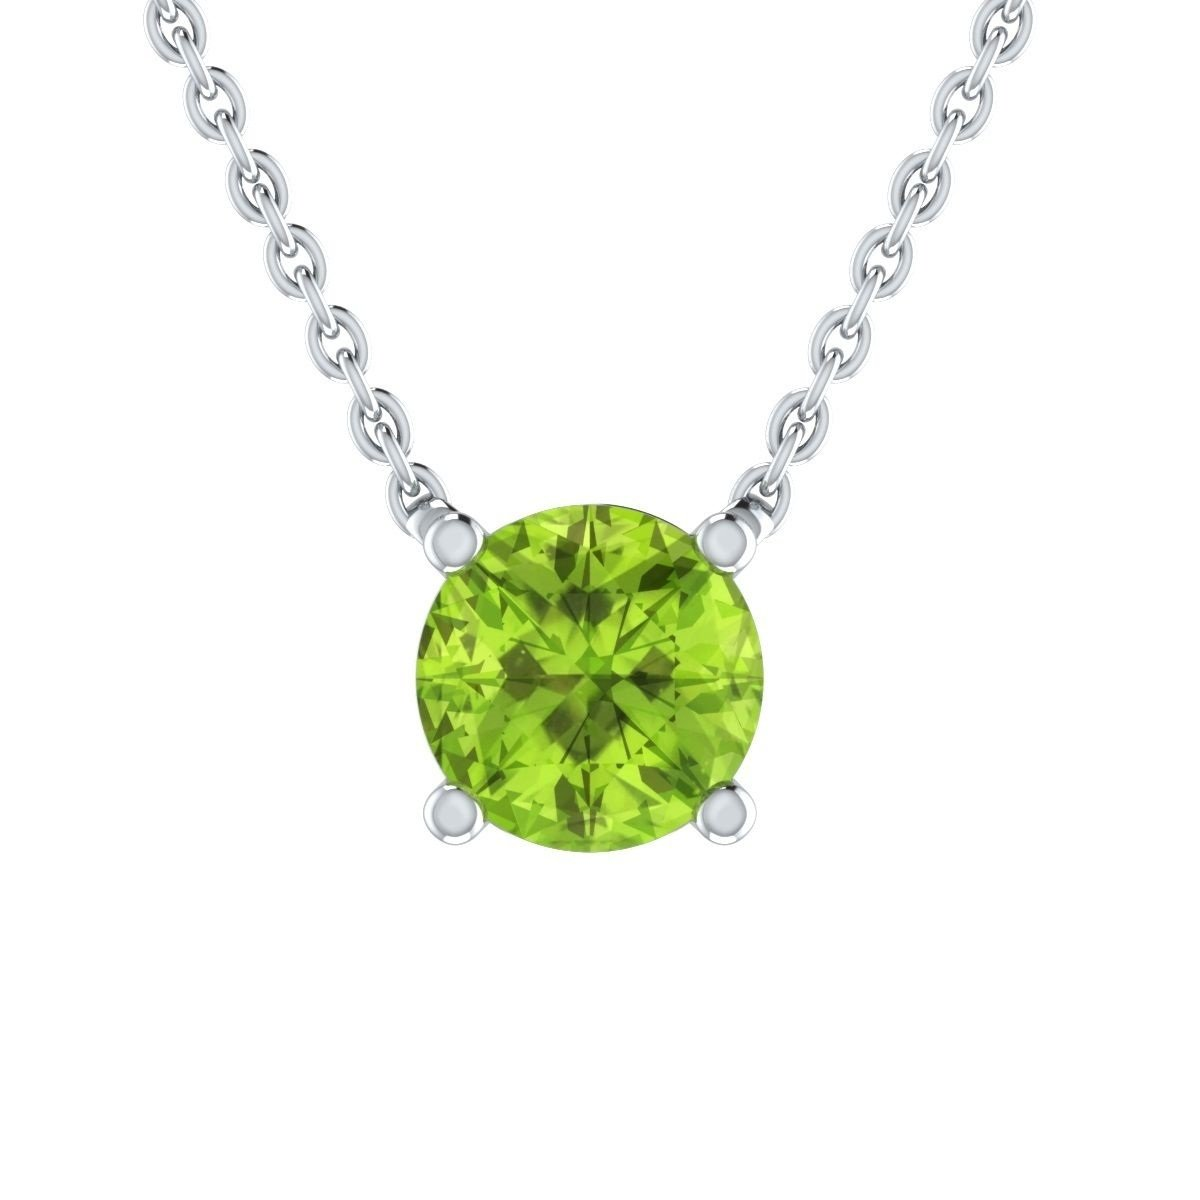 Ringjewels Solitaire Pendant Necklace for Girls 2 Ct Round Green Peridot Diamond 14K White Gold Plated